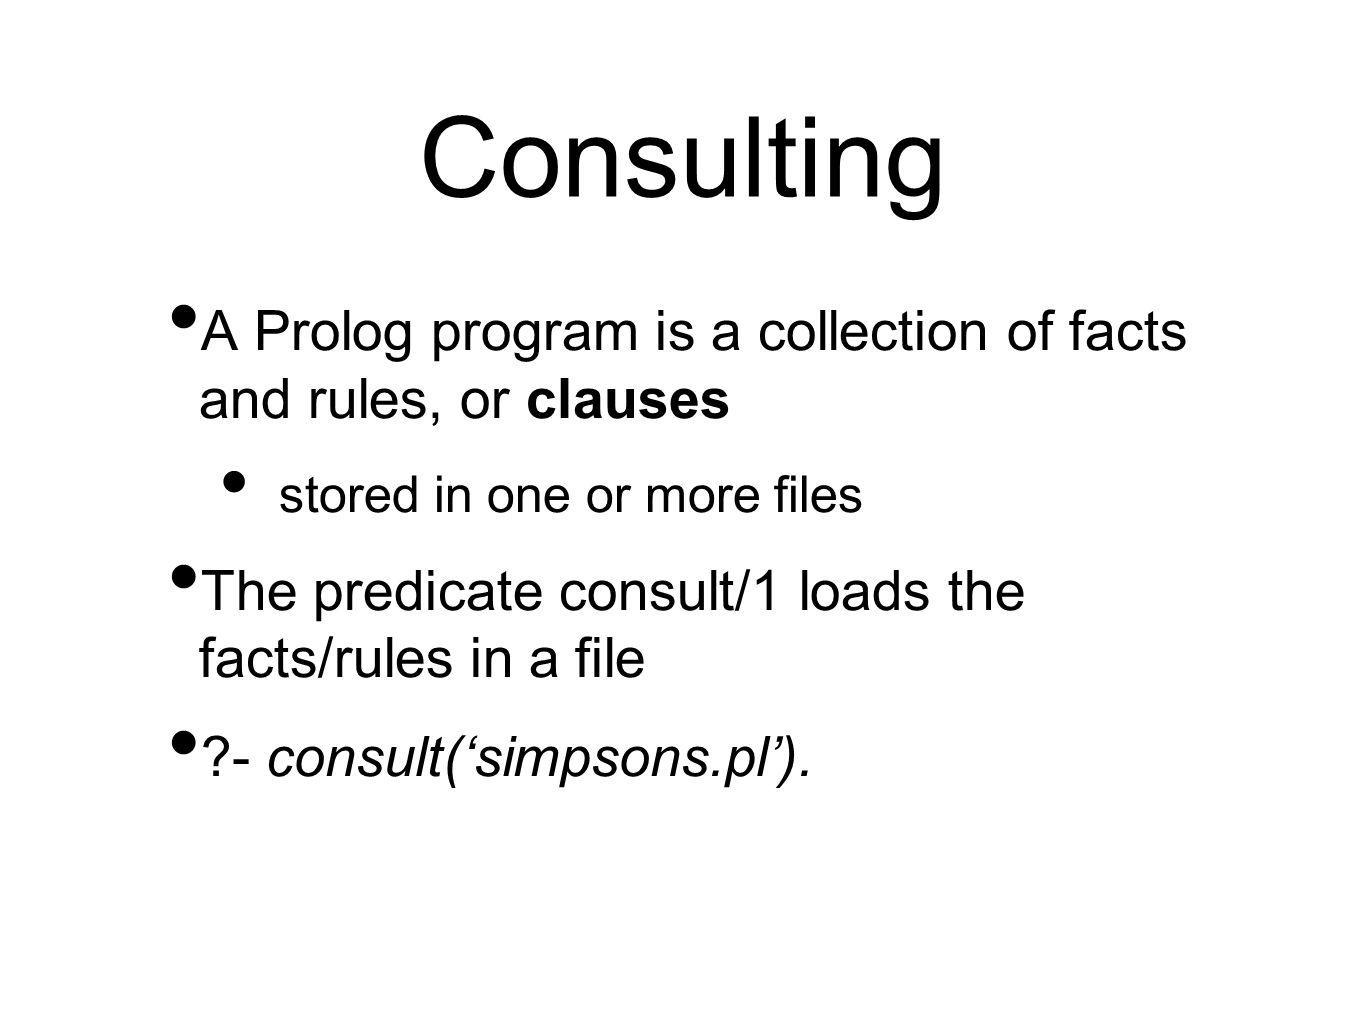 Consulting A Prolog program is a collection of facts and rules, or clauses stored in one or more files The predicate consult/1 loads the facts/rules in a file - consult('simpsons.pl').